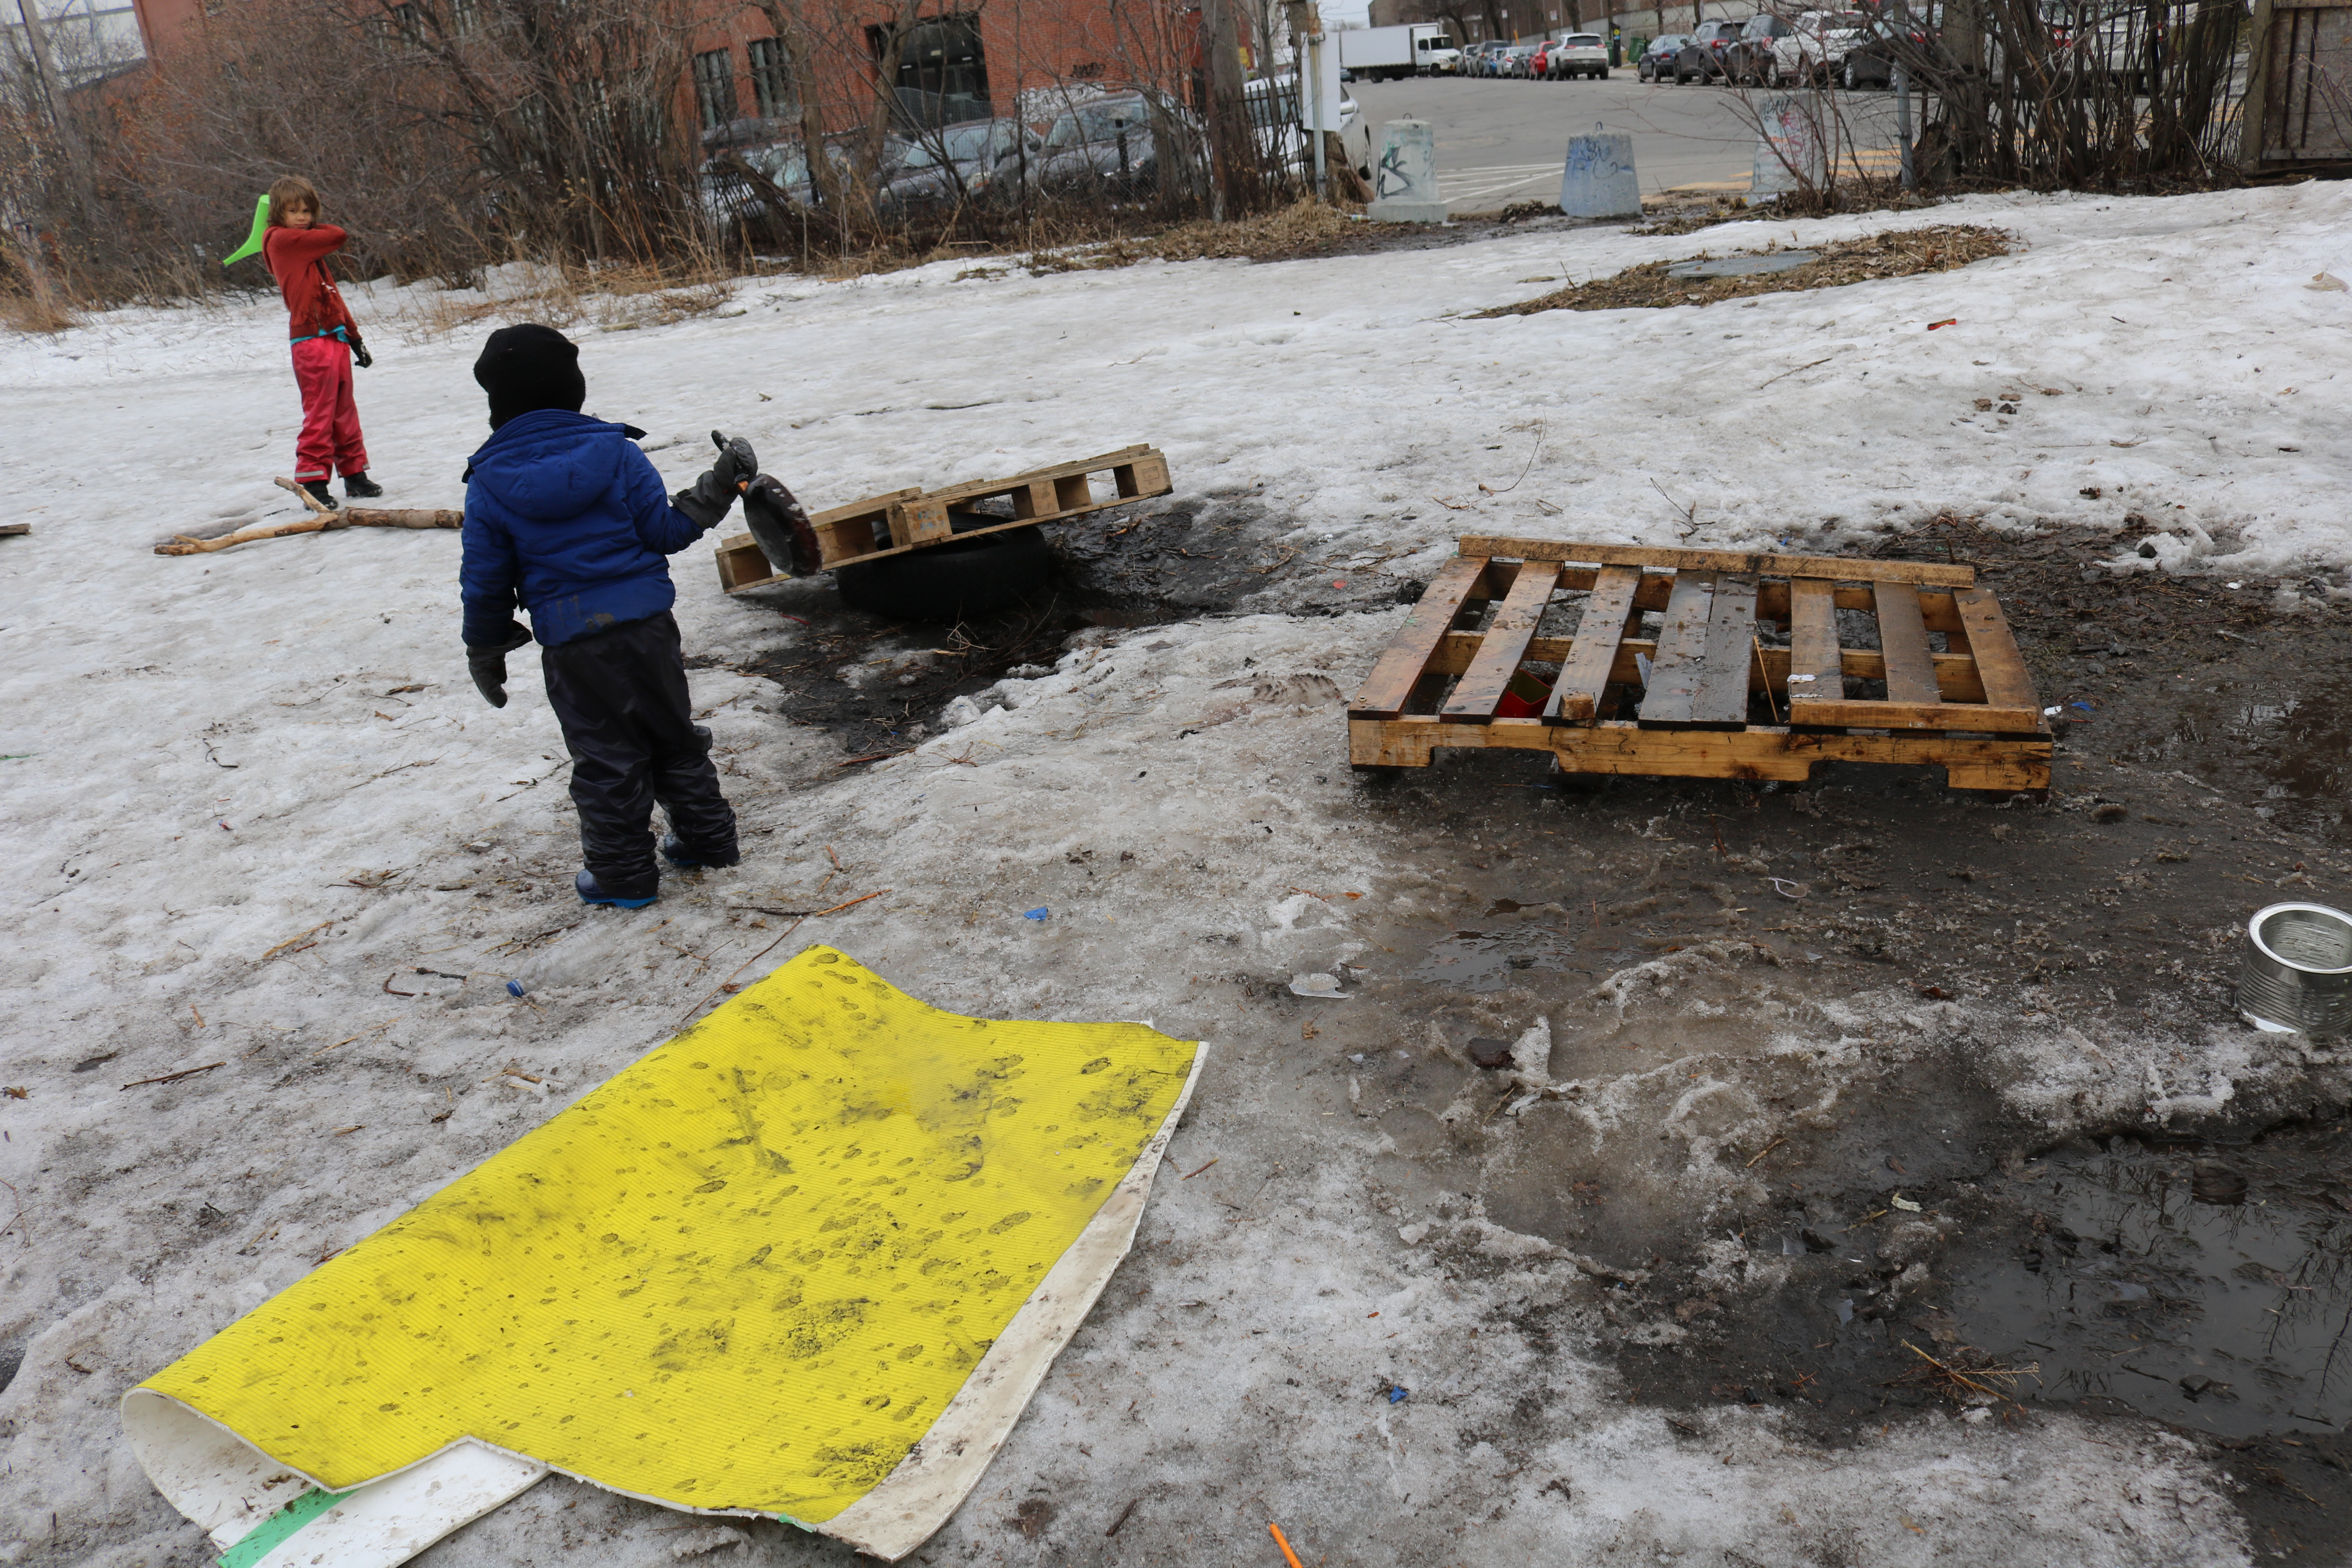 Qubec playgroundology over the next 45 minutes i marvel at their ingenuity and the consonance between do it yourself resourcefulness and budding resilience solutioingenieria Image collections